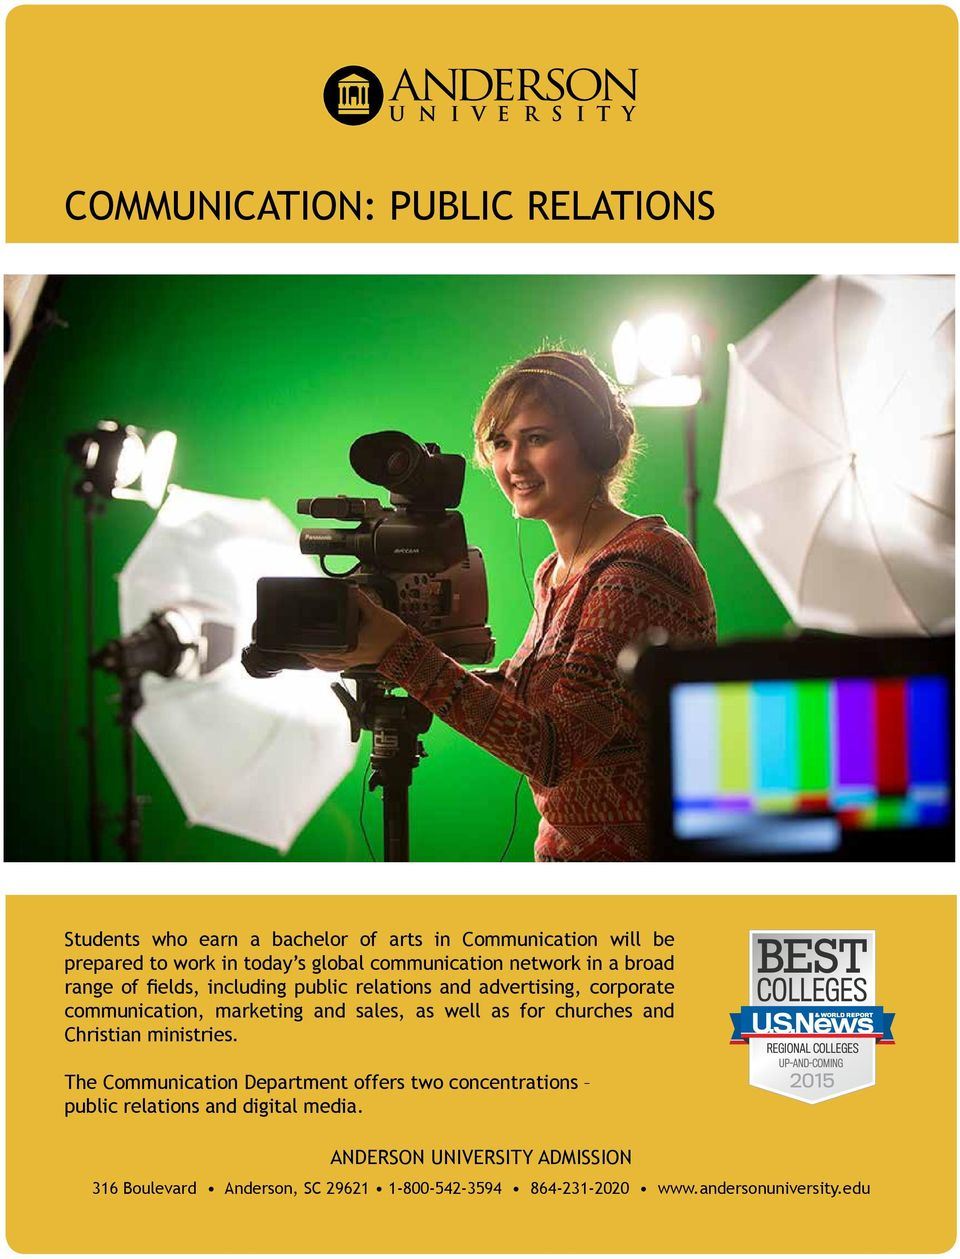 churches and Christian ministries. The Communication Department offers two concentrations public relations and digital media.